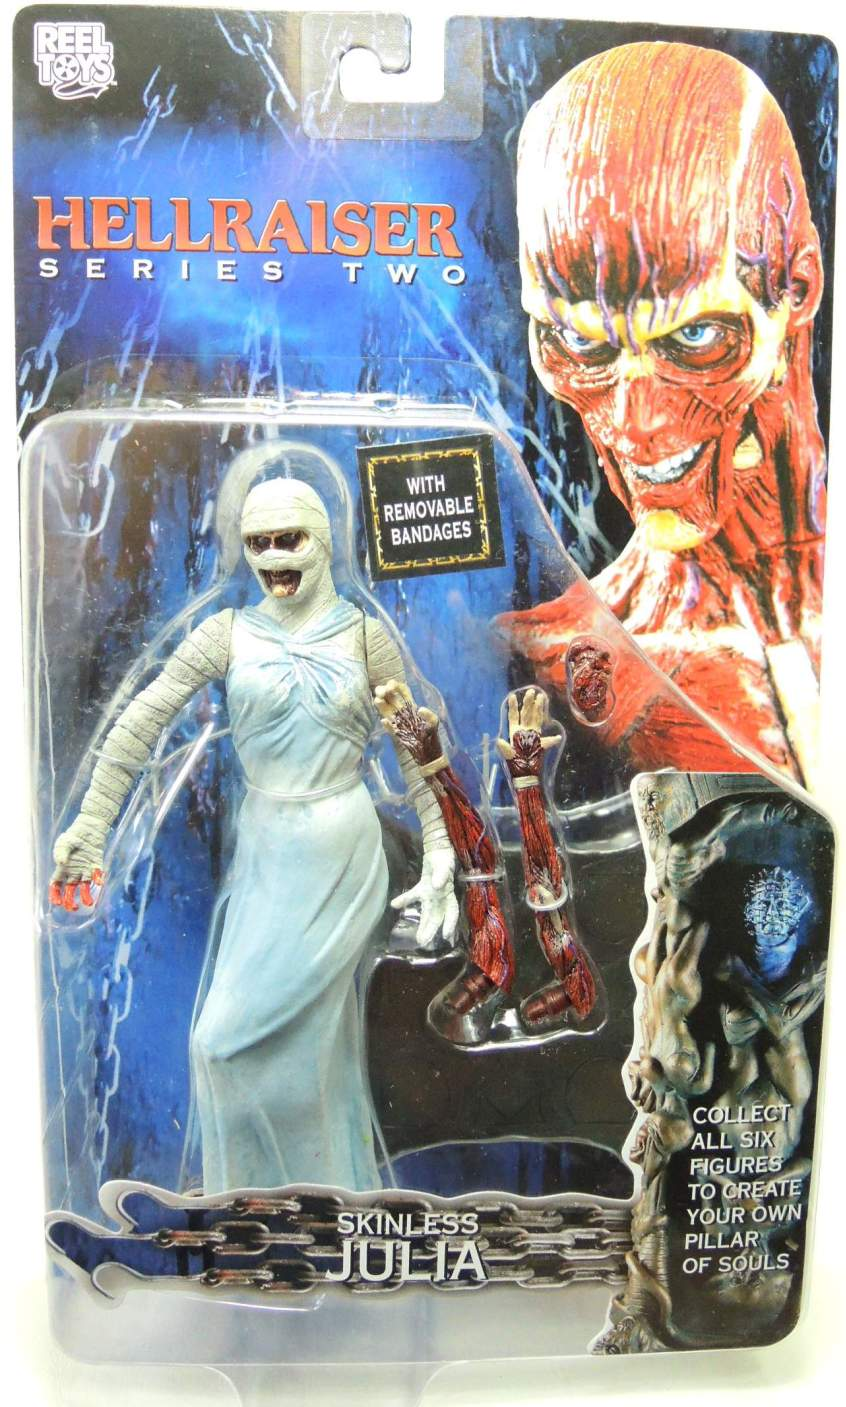 NECA Hellraiser Series 2 Skinless Julia figure NECA, Hellraiser, Action Figures, 2003, horror, halloween, movie